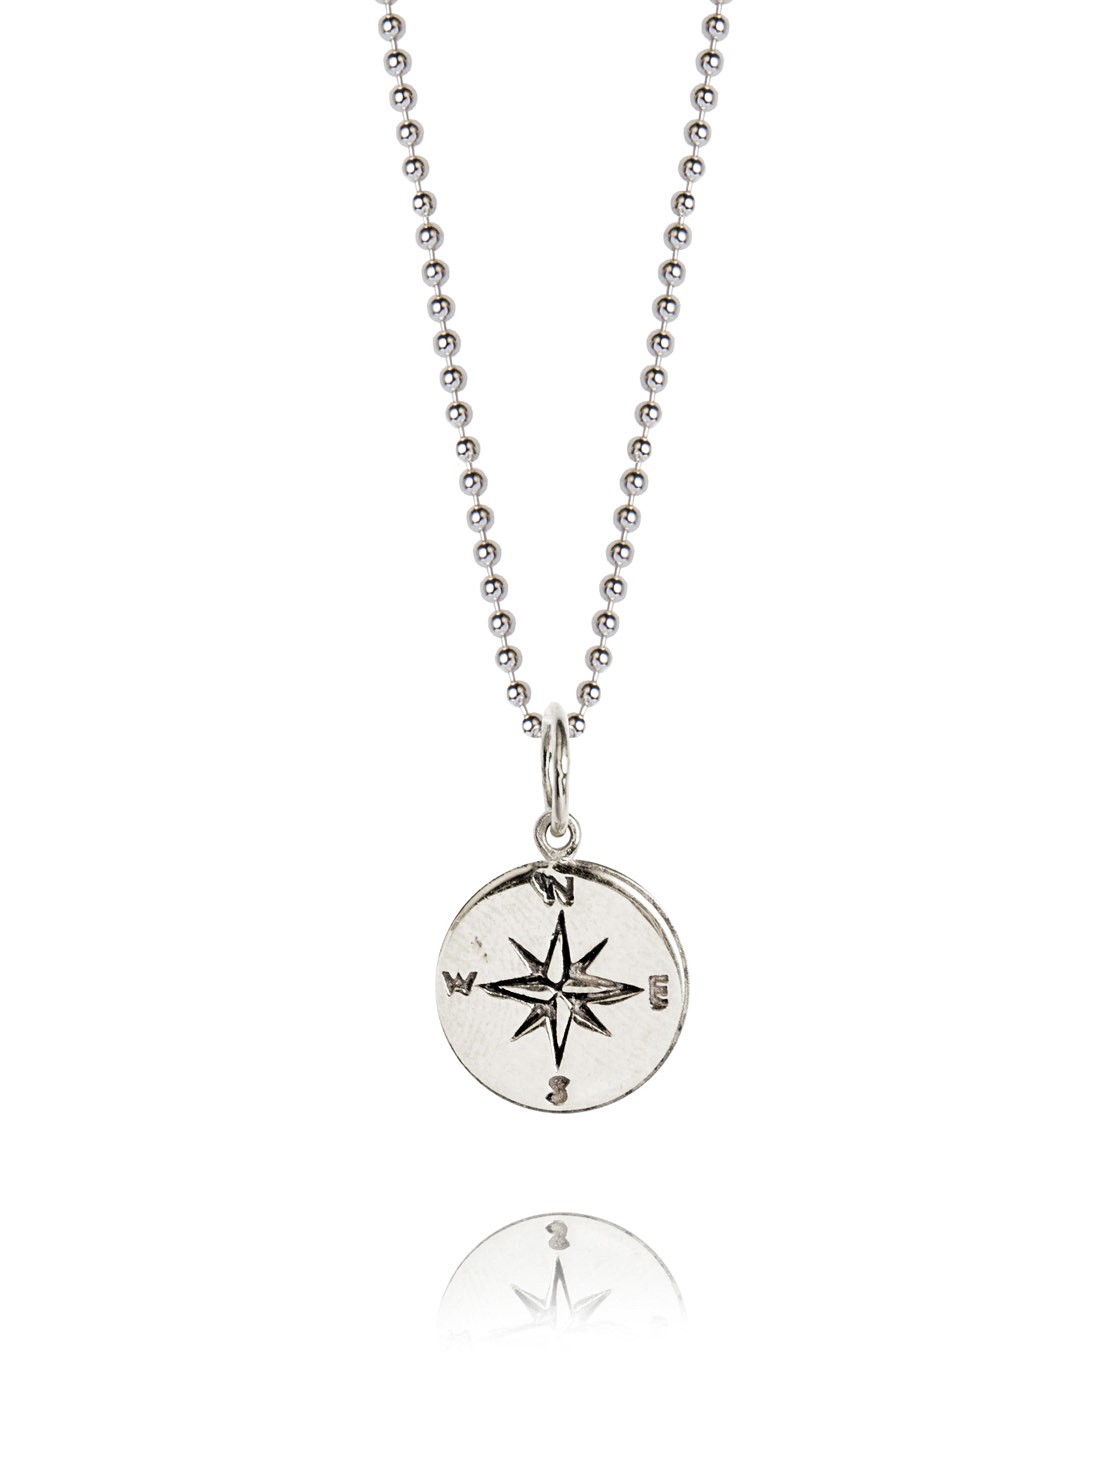 be shop necklace matter products backpackers life compass without where of lost no direction travelers you rosa i d vila